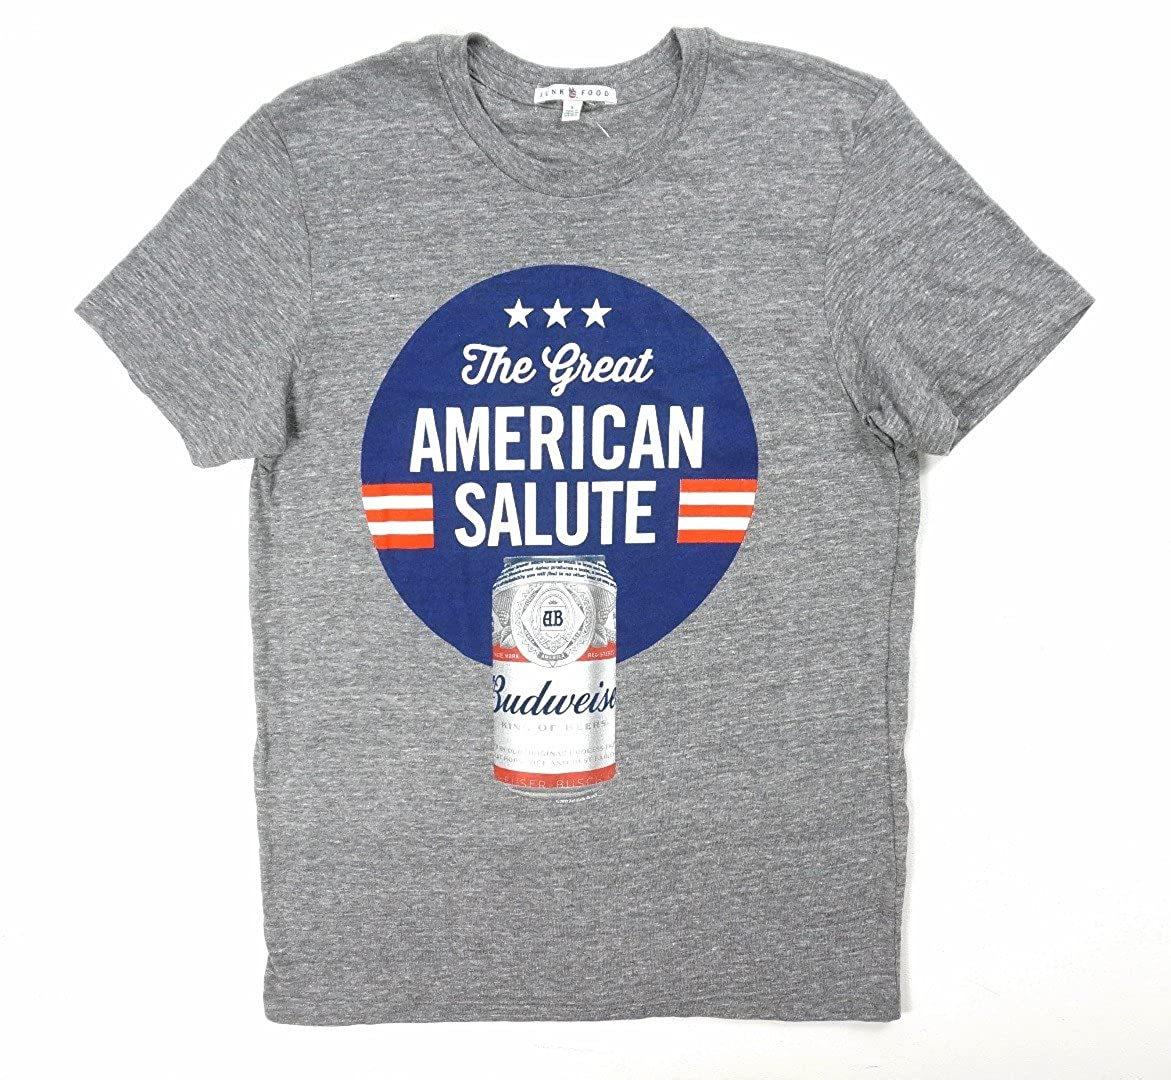 97edb7ba Amazon.com: Junk Food New Gray American Salute Budweiser Beer T-Shirt Size  L: Clothing